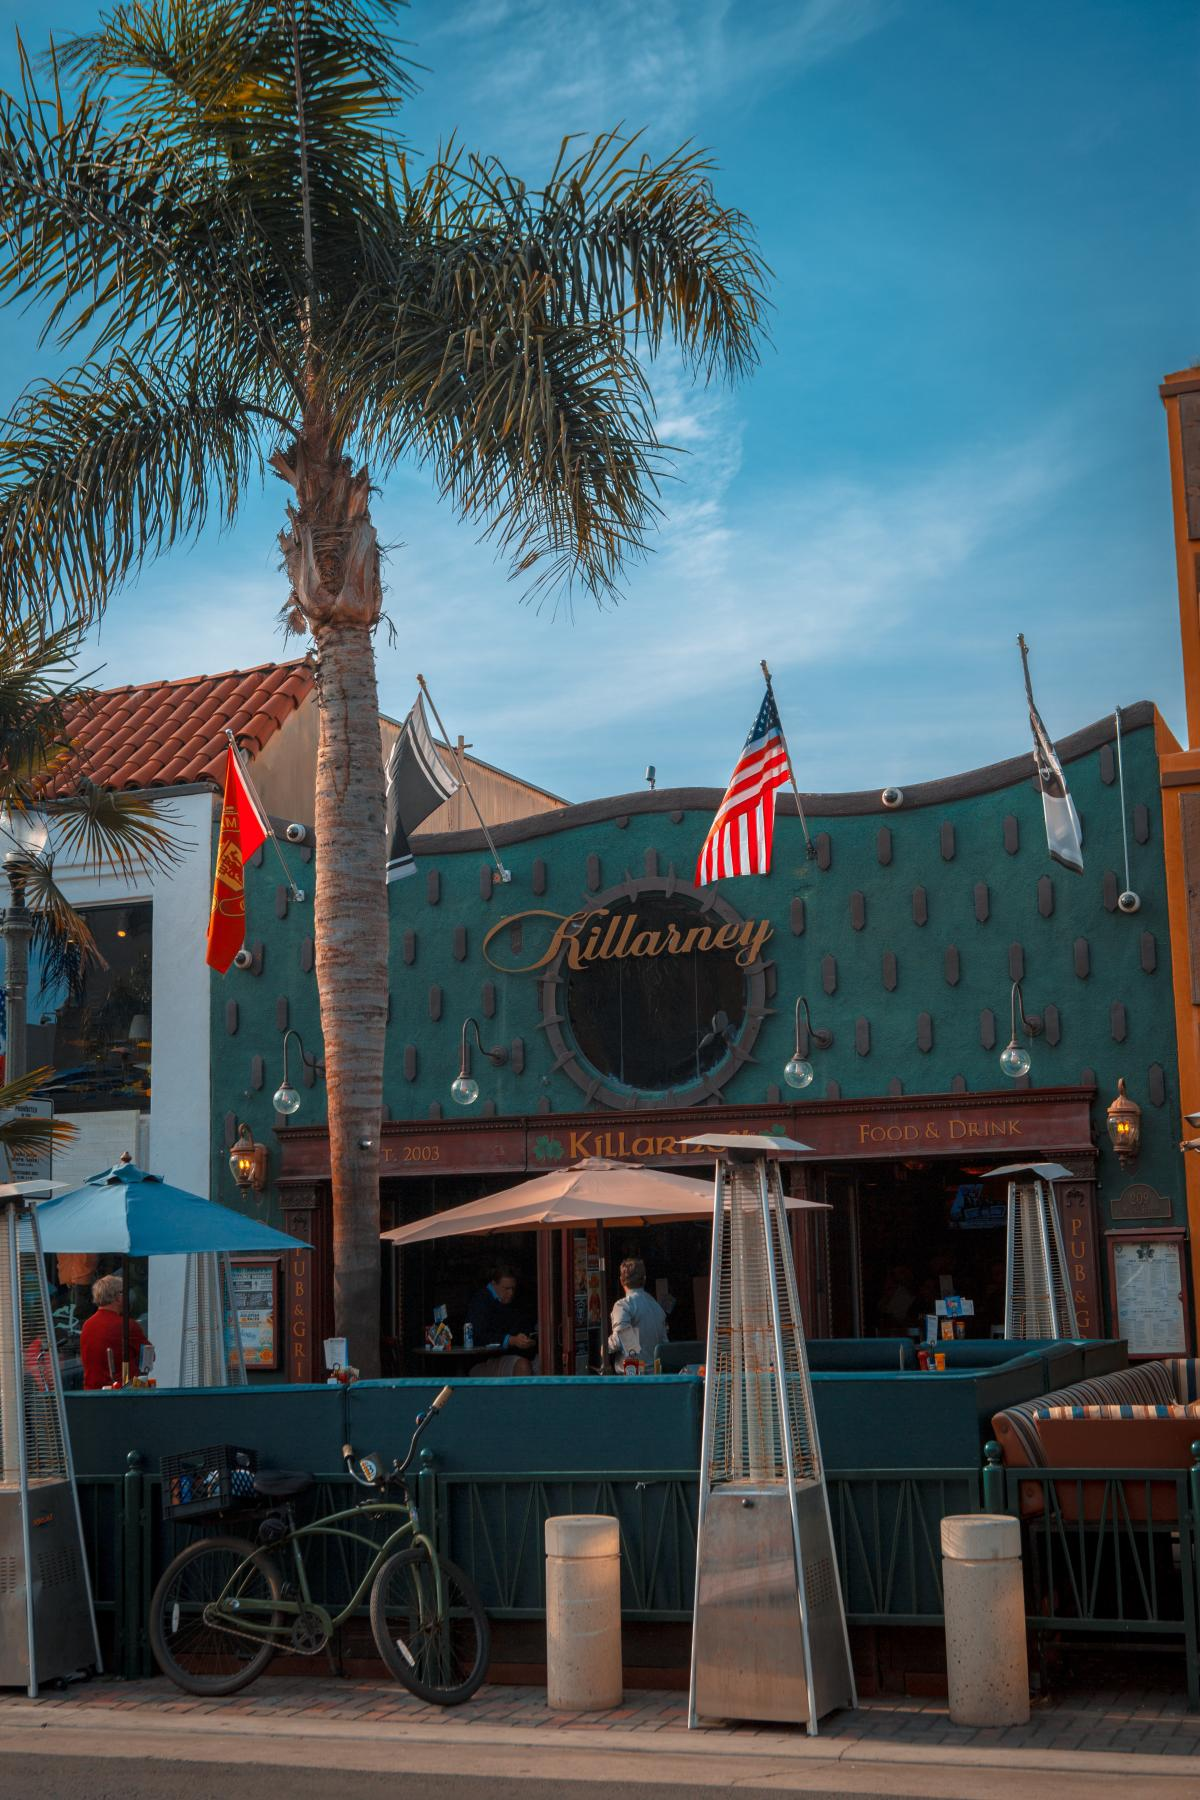 Killarney's in Huntington Beach